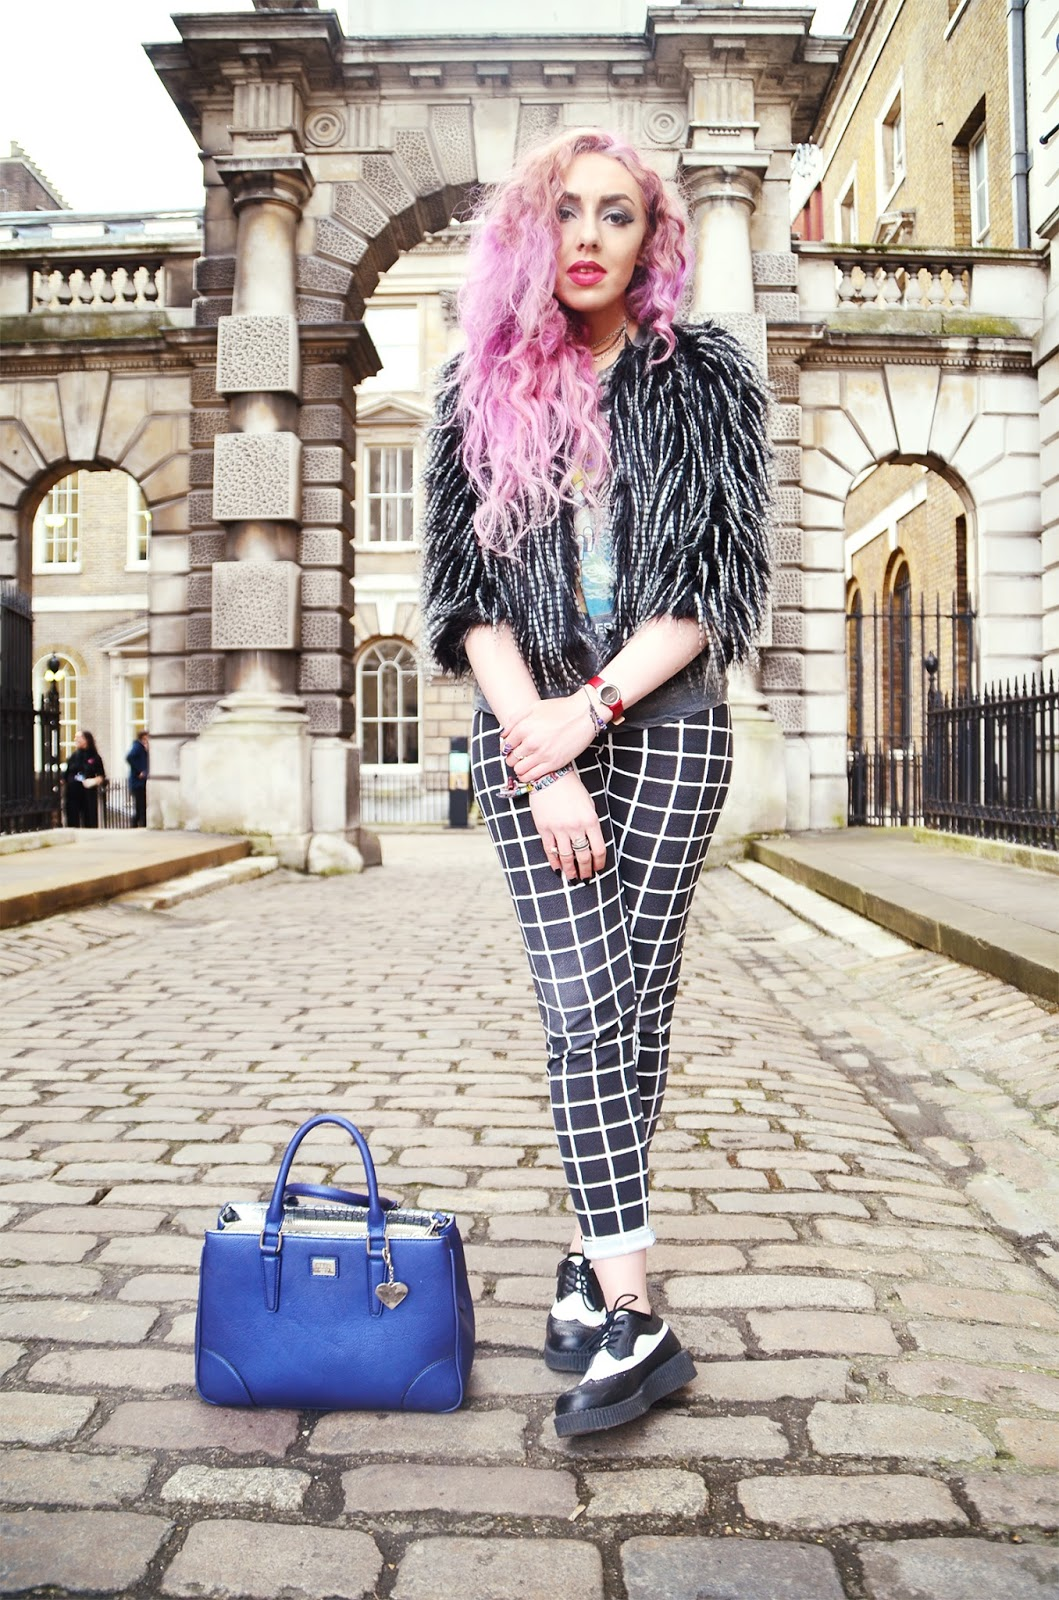 LFW A/W15 DAY FOUR OOTD// FASHIONPILLS AND PINK FLOYD. OUTFIT OF THE DAY Black and white speckled fur jacket * // Fashion Pills Pink Floyd Wish You Were Here T-shirt // Urban Outfitters Check pattern trousers * // Boohoo Black and white monochrome creeper platform brogues * // SpyLoveBuy Red Watch * // Bering Blue Silver lining grab bag * // Marc B Sunglasses * // Mui Mui Rings * // Story, Black Moon, Euphoria Creations